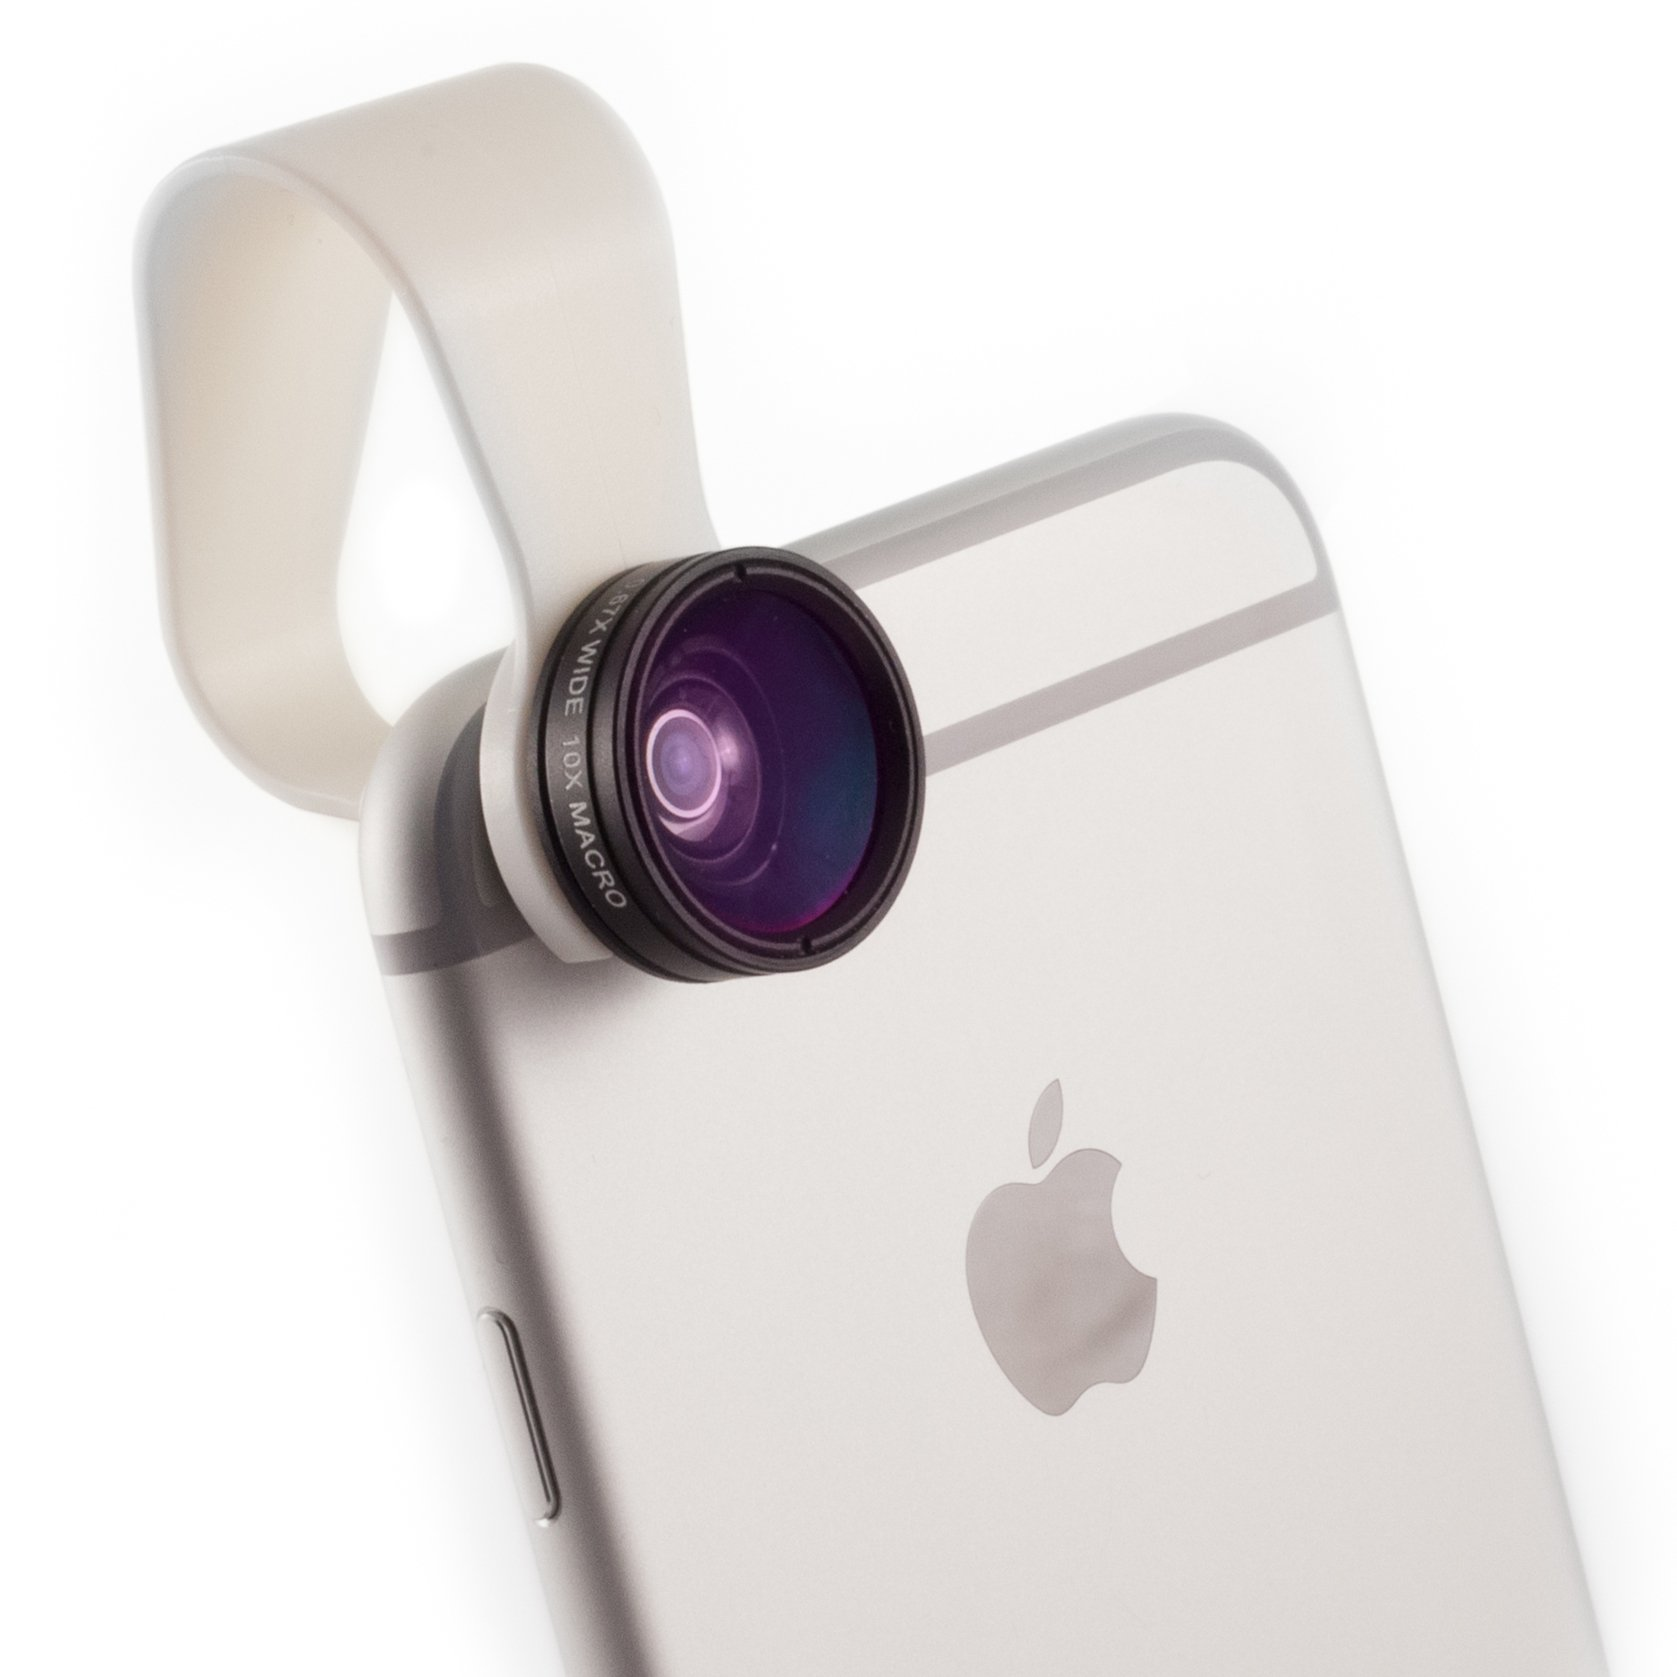 Cell Phone Camera Lens 2-in-1 by Pocket Lens, Macro and Wideangle lens, Fits All iPhones, iPads, Samsung, Google Phones, Alternative to Olloclip, Comes With Waterproof Pouch